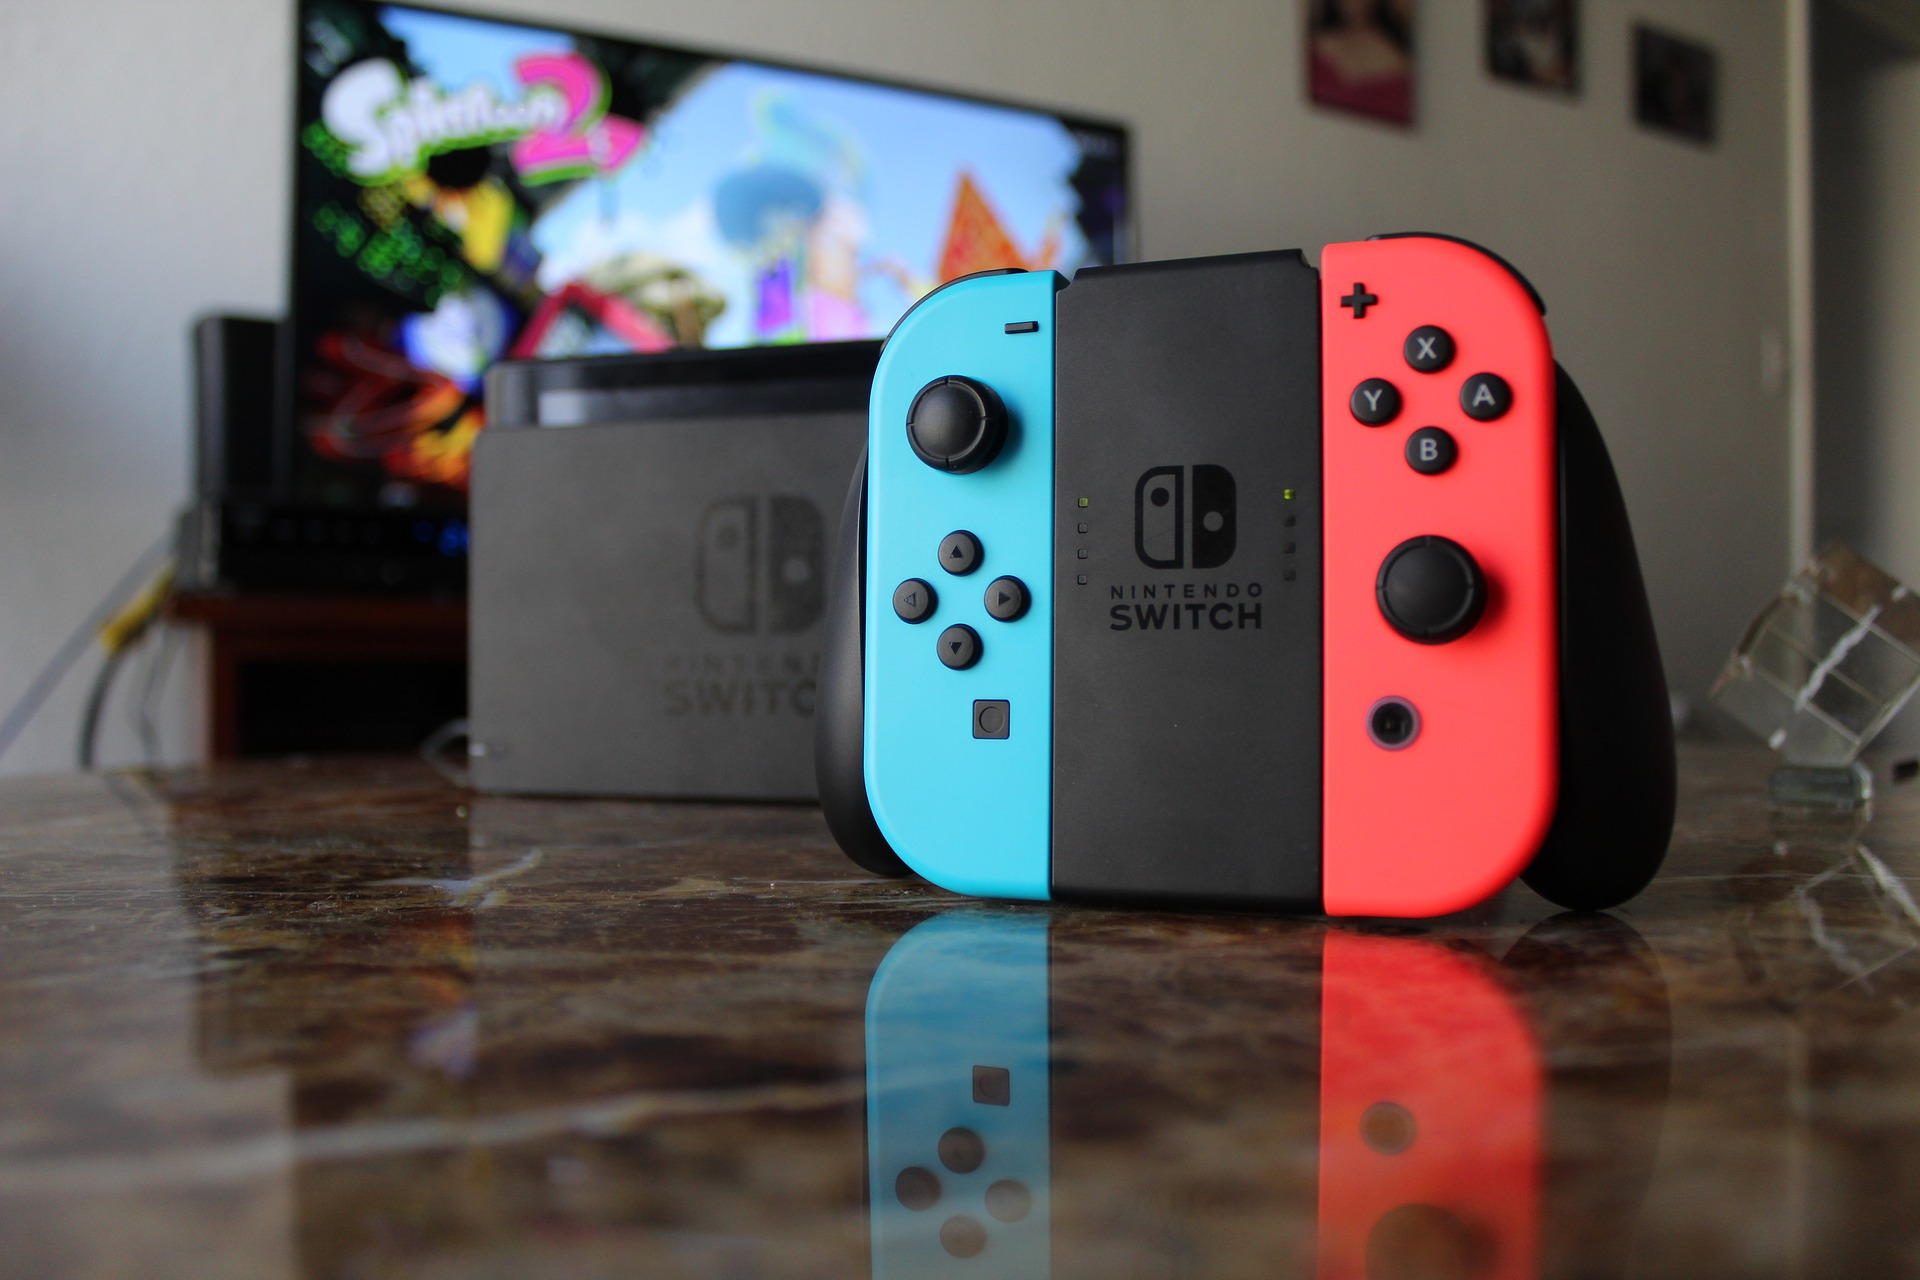 A nintendo switch piece with blue and red sides sits on a dark marble countertop with a video game screen in the background